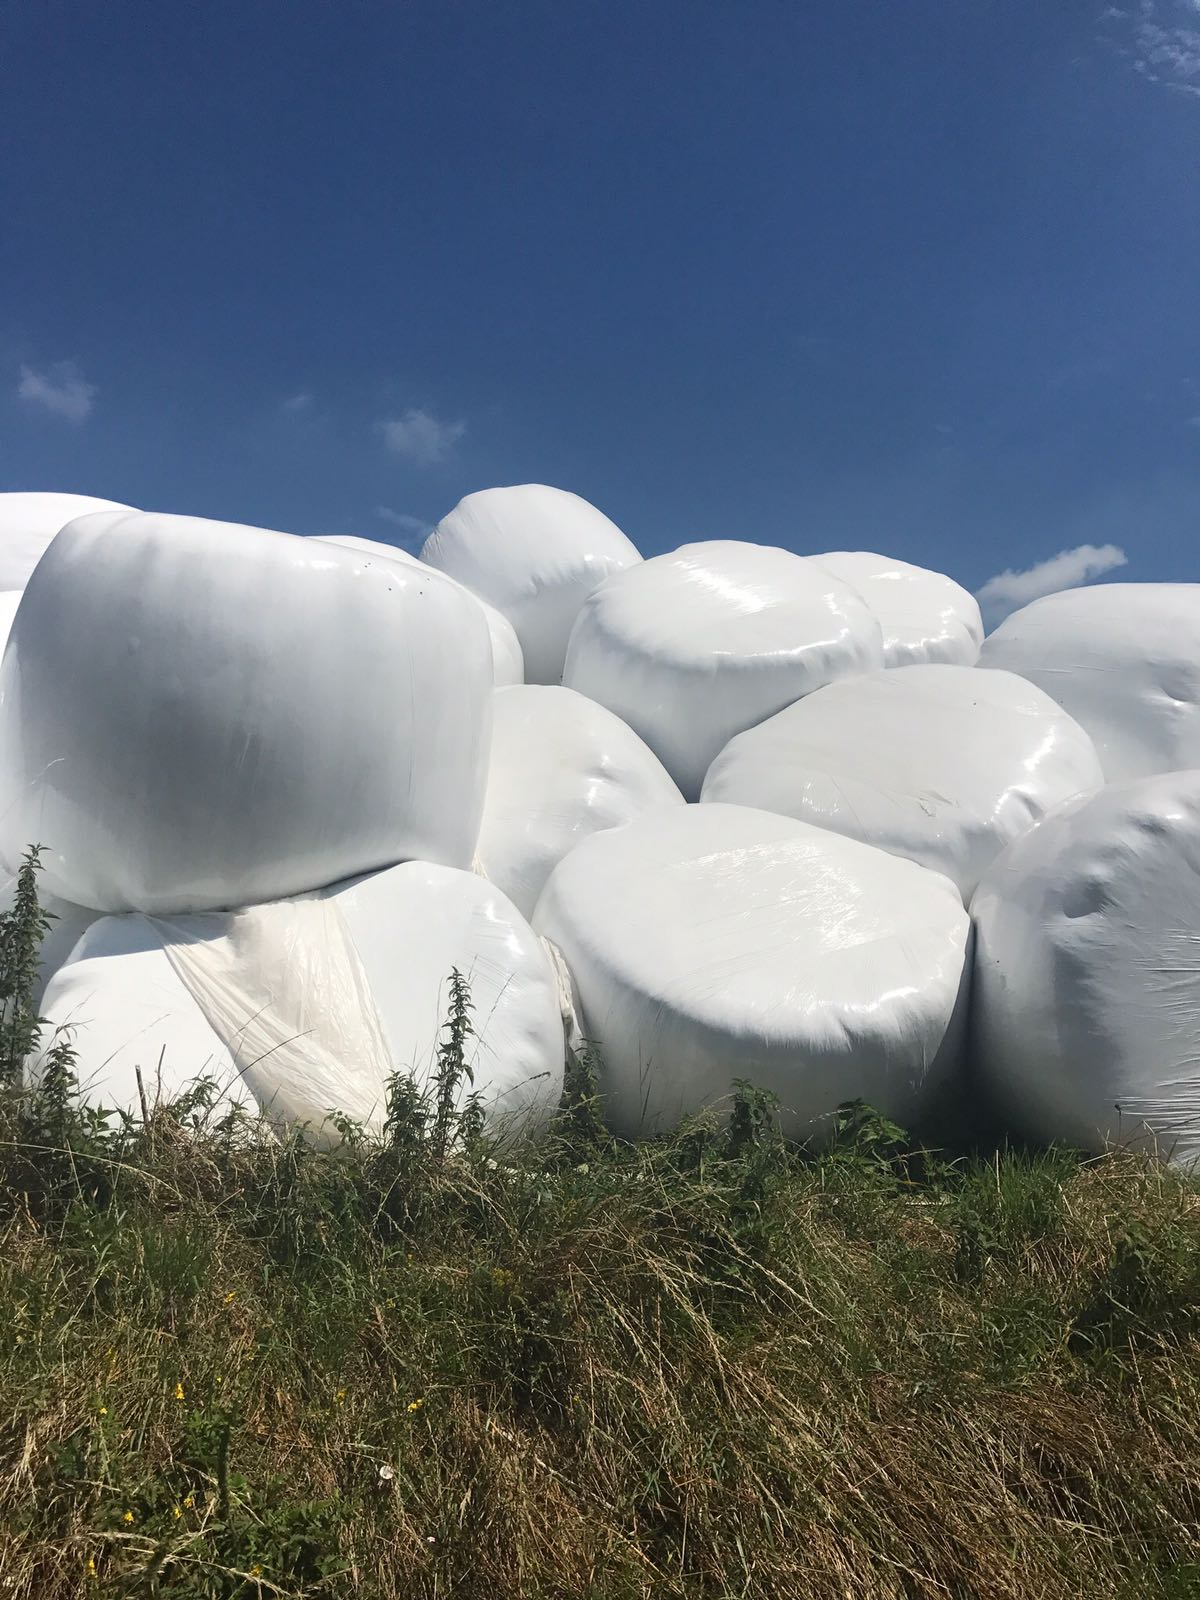 Piles of hay bales wrapped in white plastic. Grass below. Blue sky above.